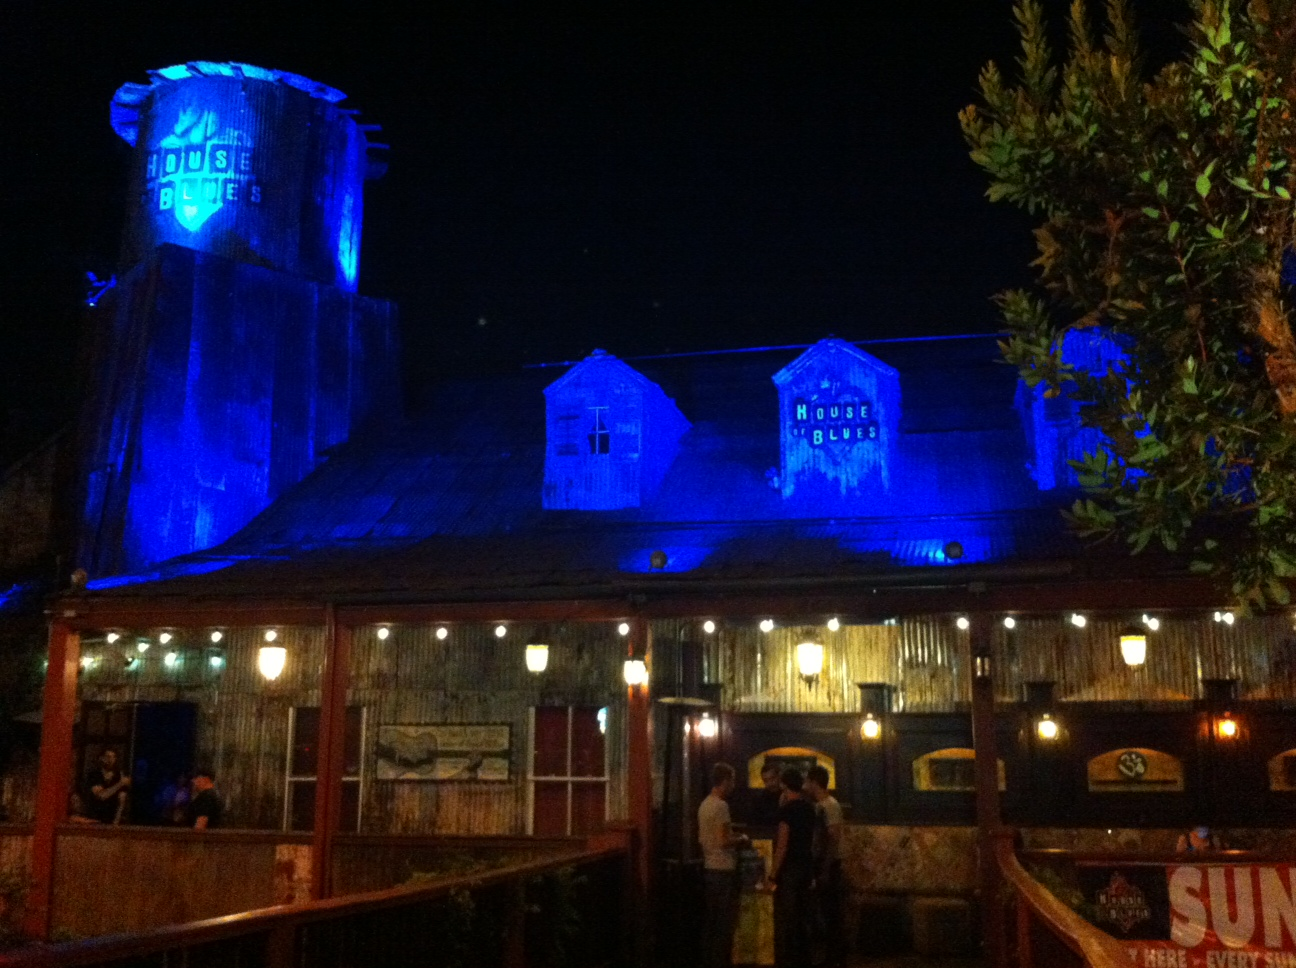 Bar House of Blues. Sunset Blvd en Los Angeles